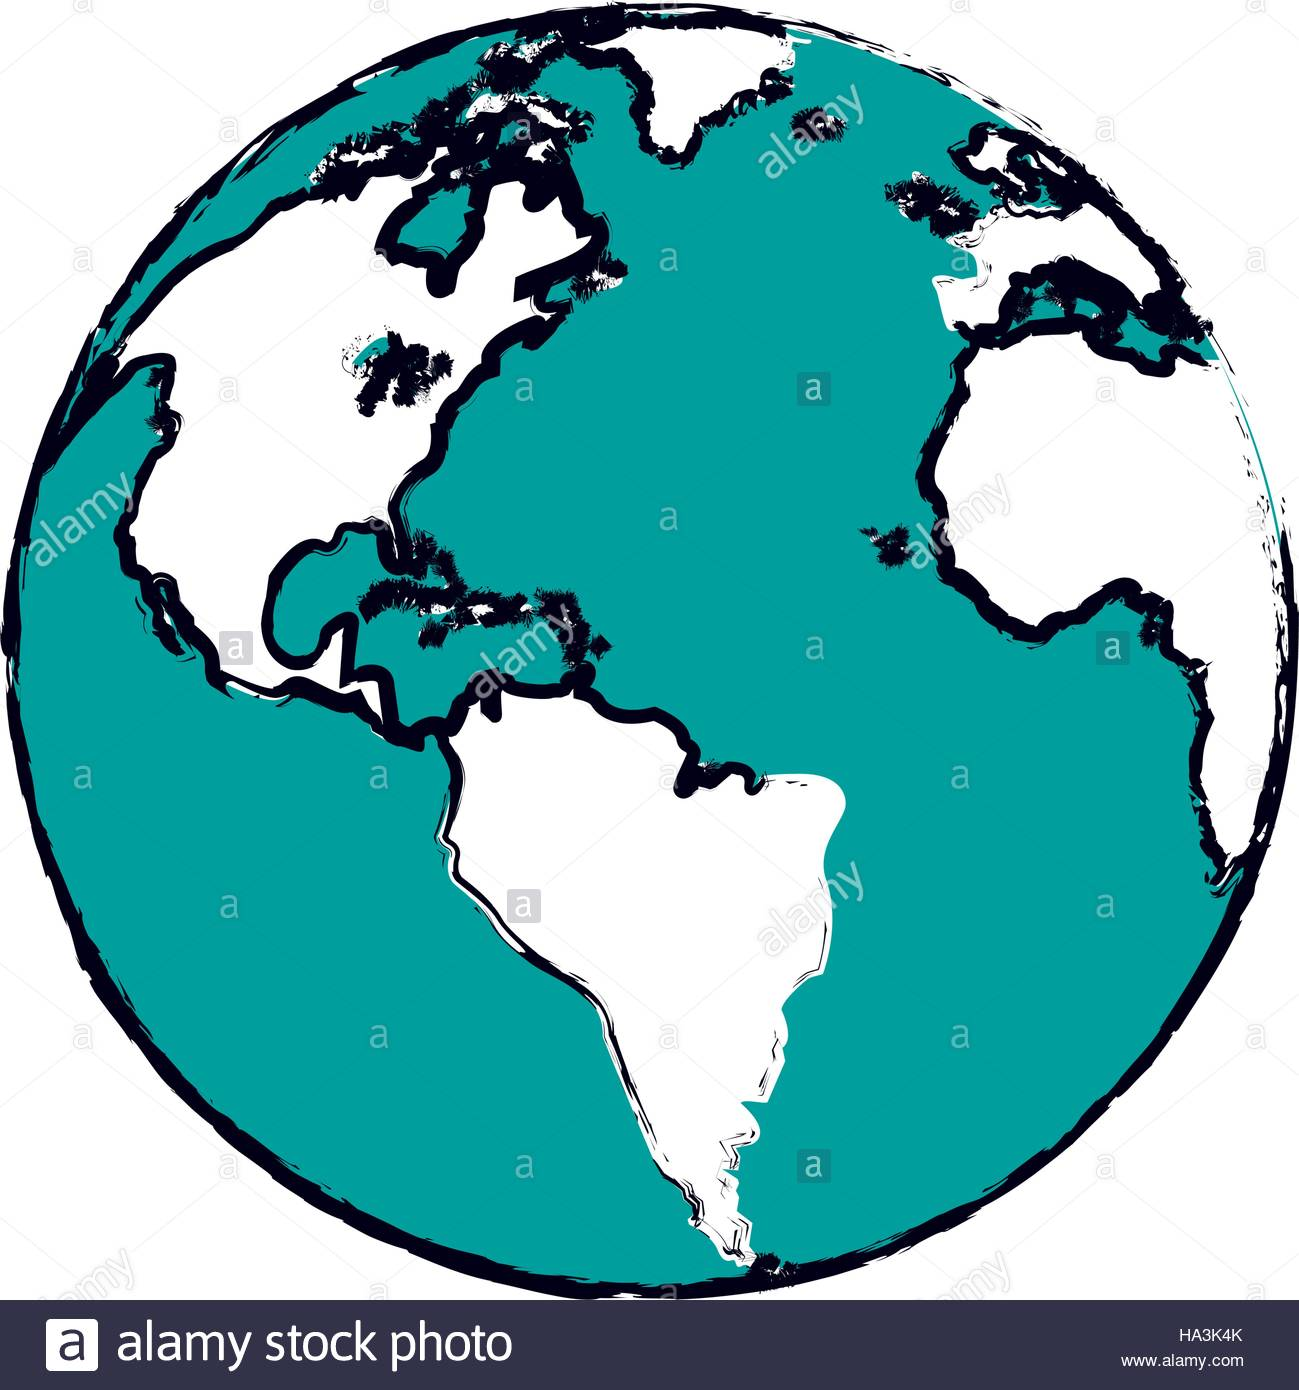 Cartoon picture of the world globe free download best cartoon 1299x1390 cartoon globe map world earth business icon stock vector art gumiabroncs Images